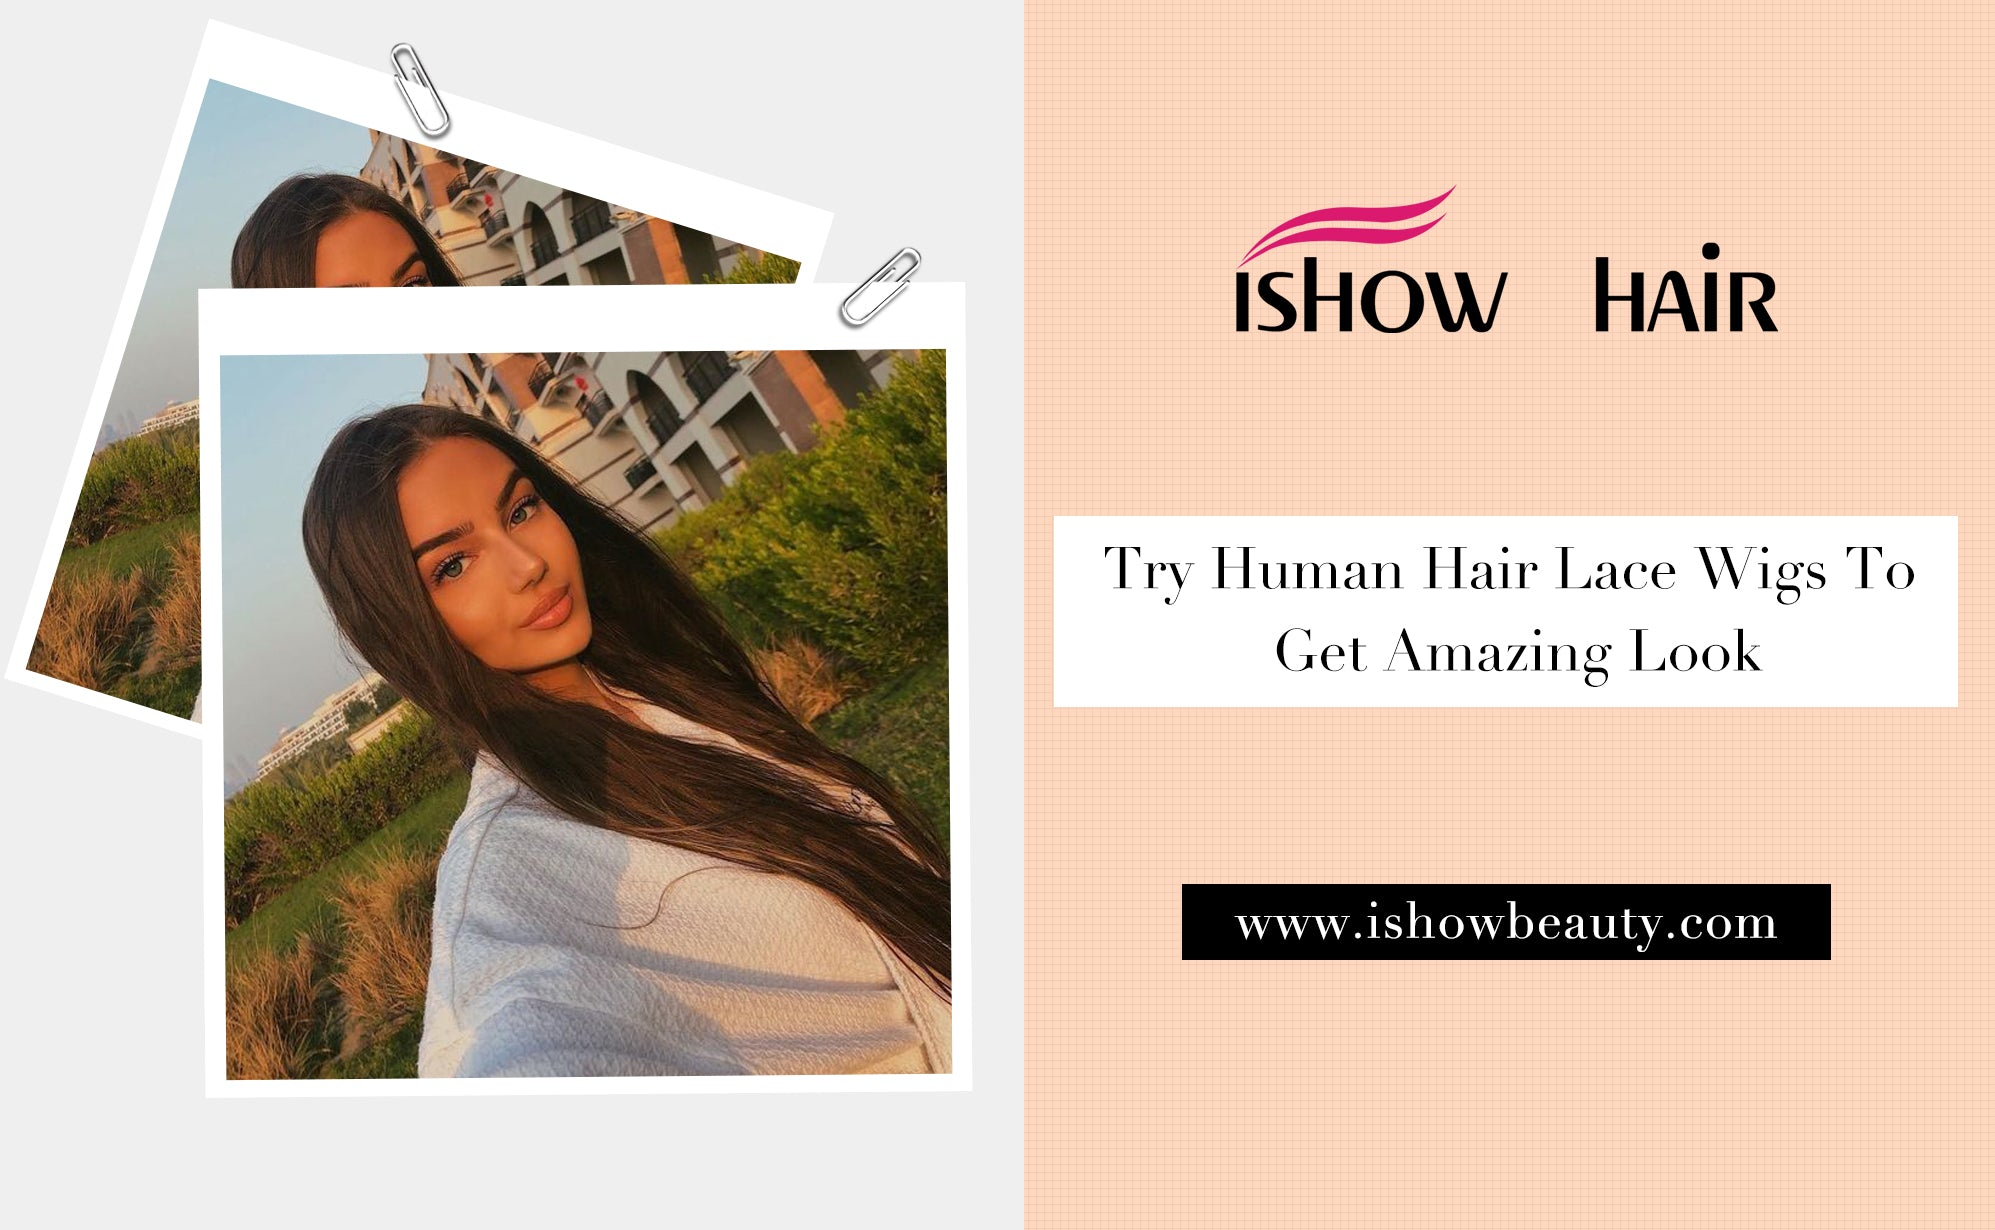 Try Human Hair Lace Wigs To Get Amazing Look